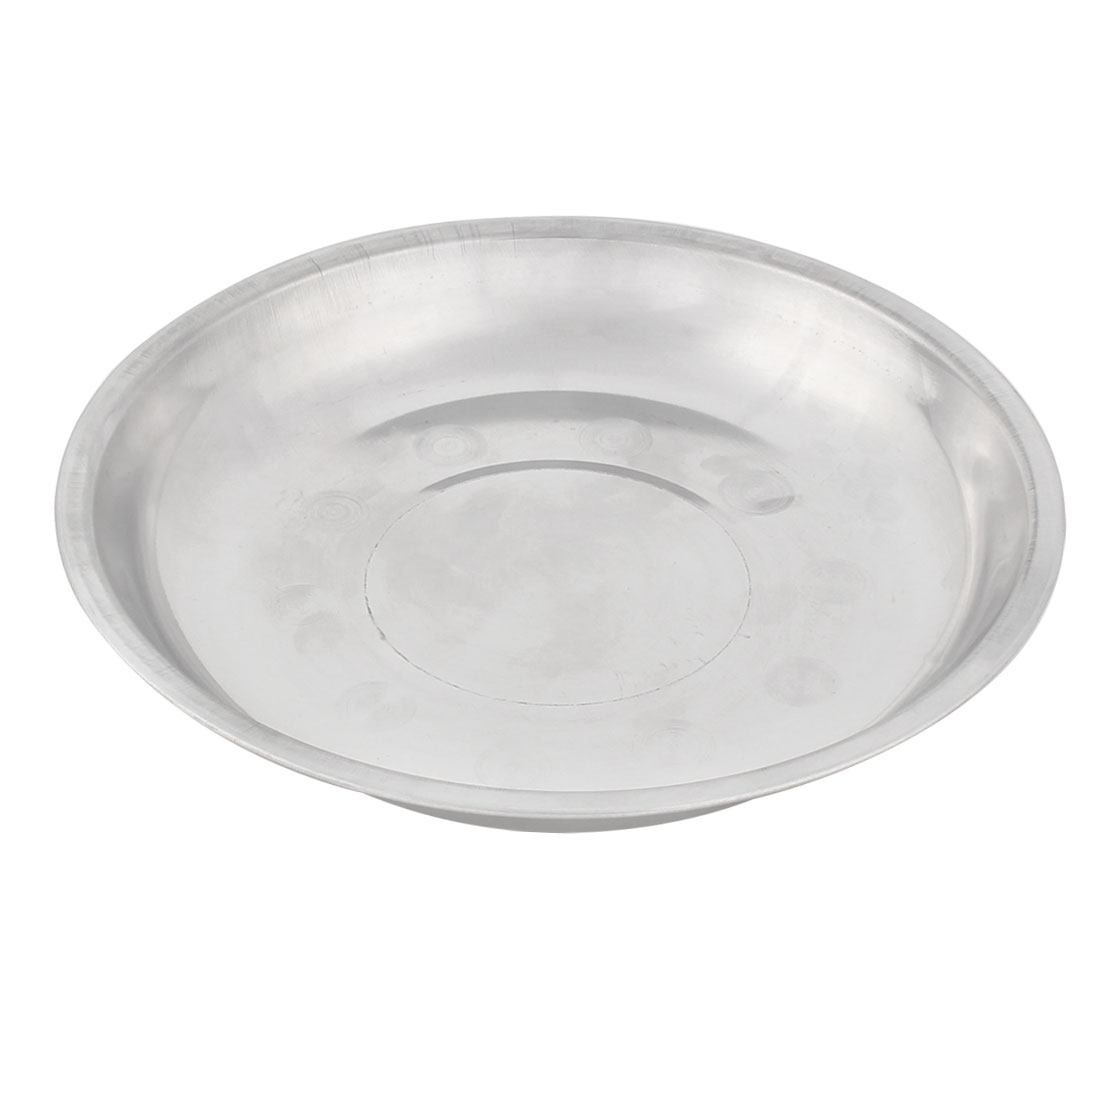 Household Kitchen Stainless Steel Round Shaped Dish Plate Silver Tone 21cm Diameter